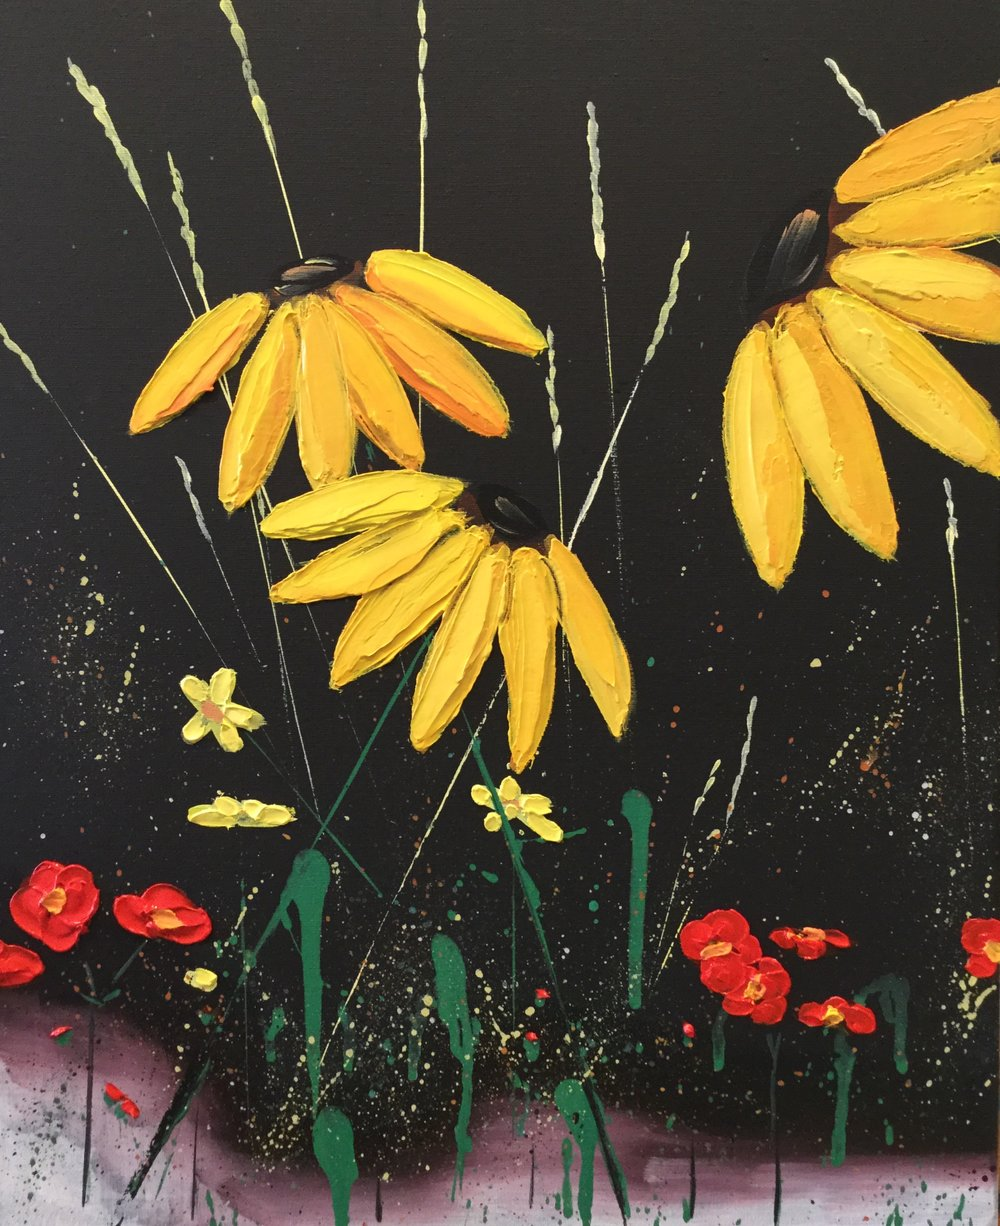 $50.00 - per painter. Includes wine or beer. No alcohol option available.